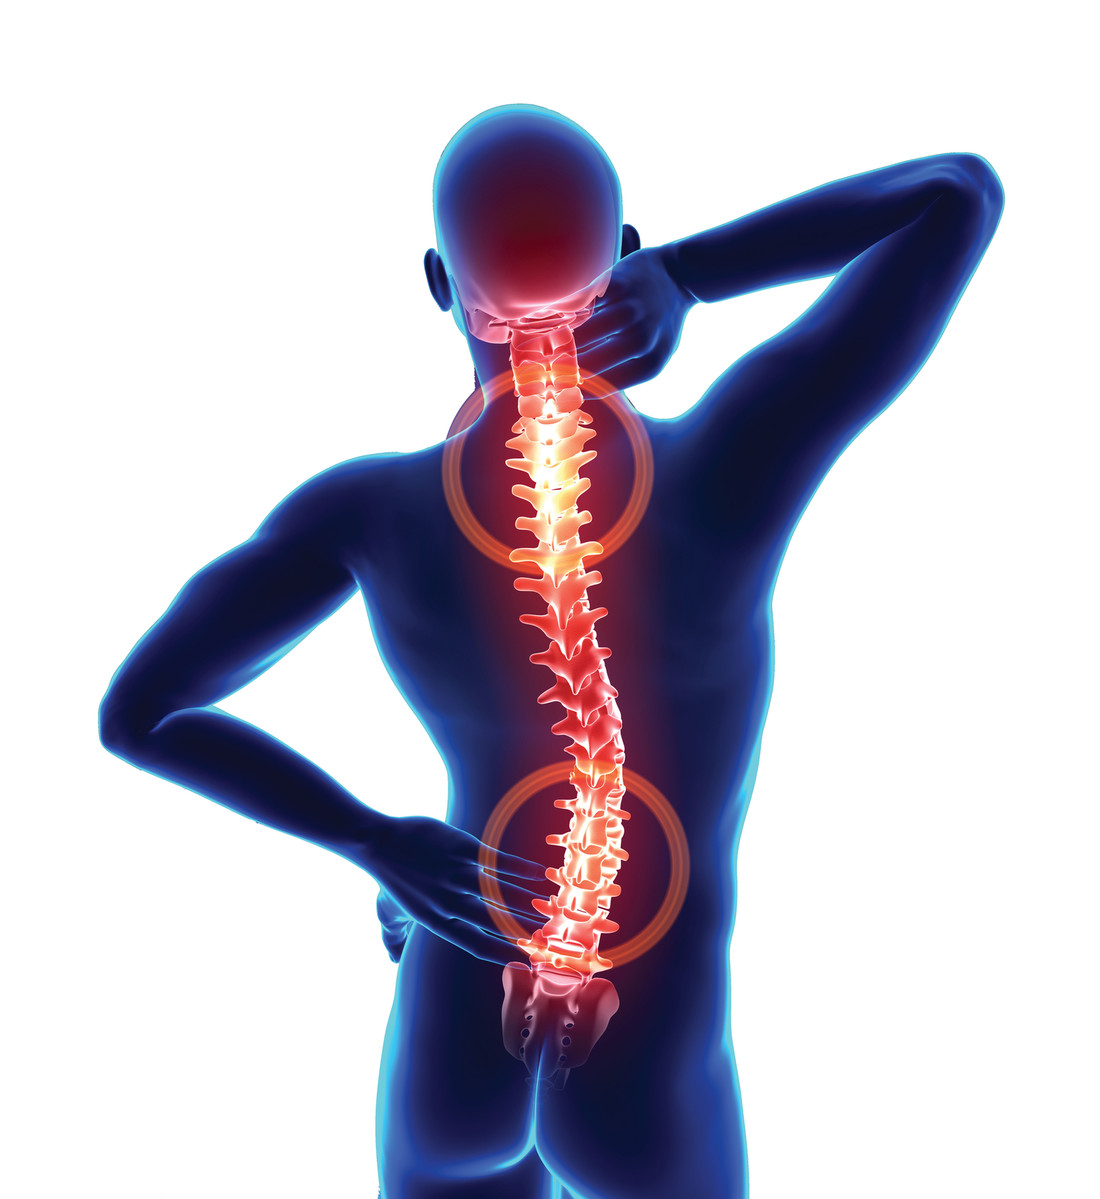 What Are Some Common Causes of Back and Neck Pain?